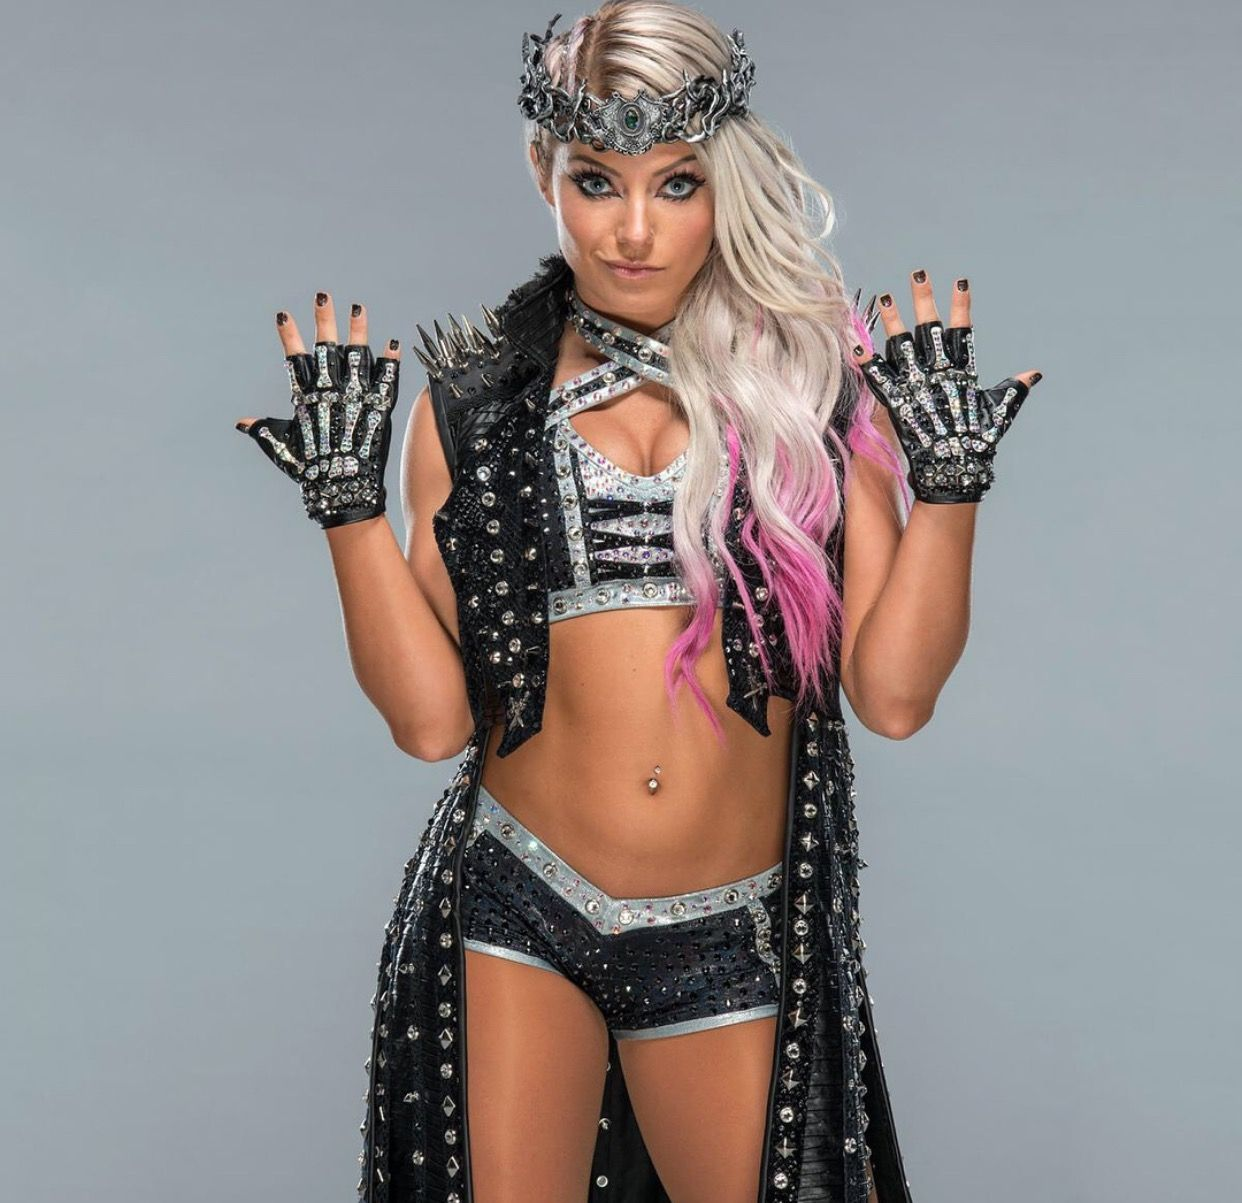 Pin By Jason Cook On Alexa Bliss Queen Of The Ring Wwe Girls Raw Women S Champion